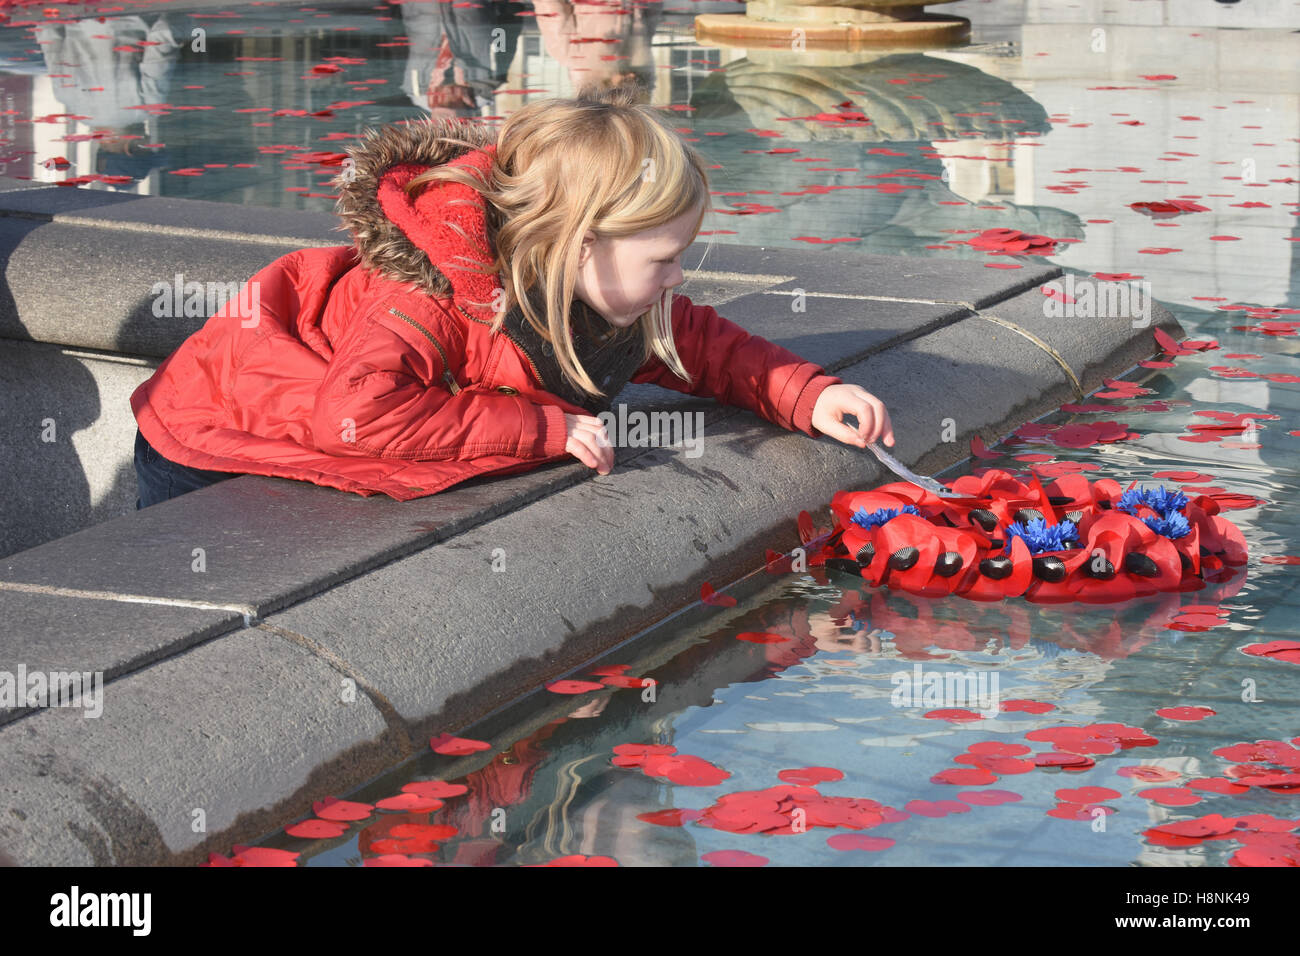 A young girl pushes a poppy wreath into the fountains,Armistice Day,The Royal British Legion,Trafalgar Square,London.UK - Stock Image